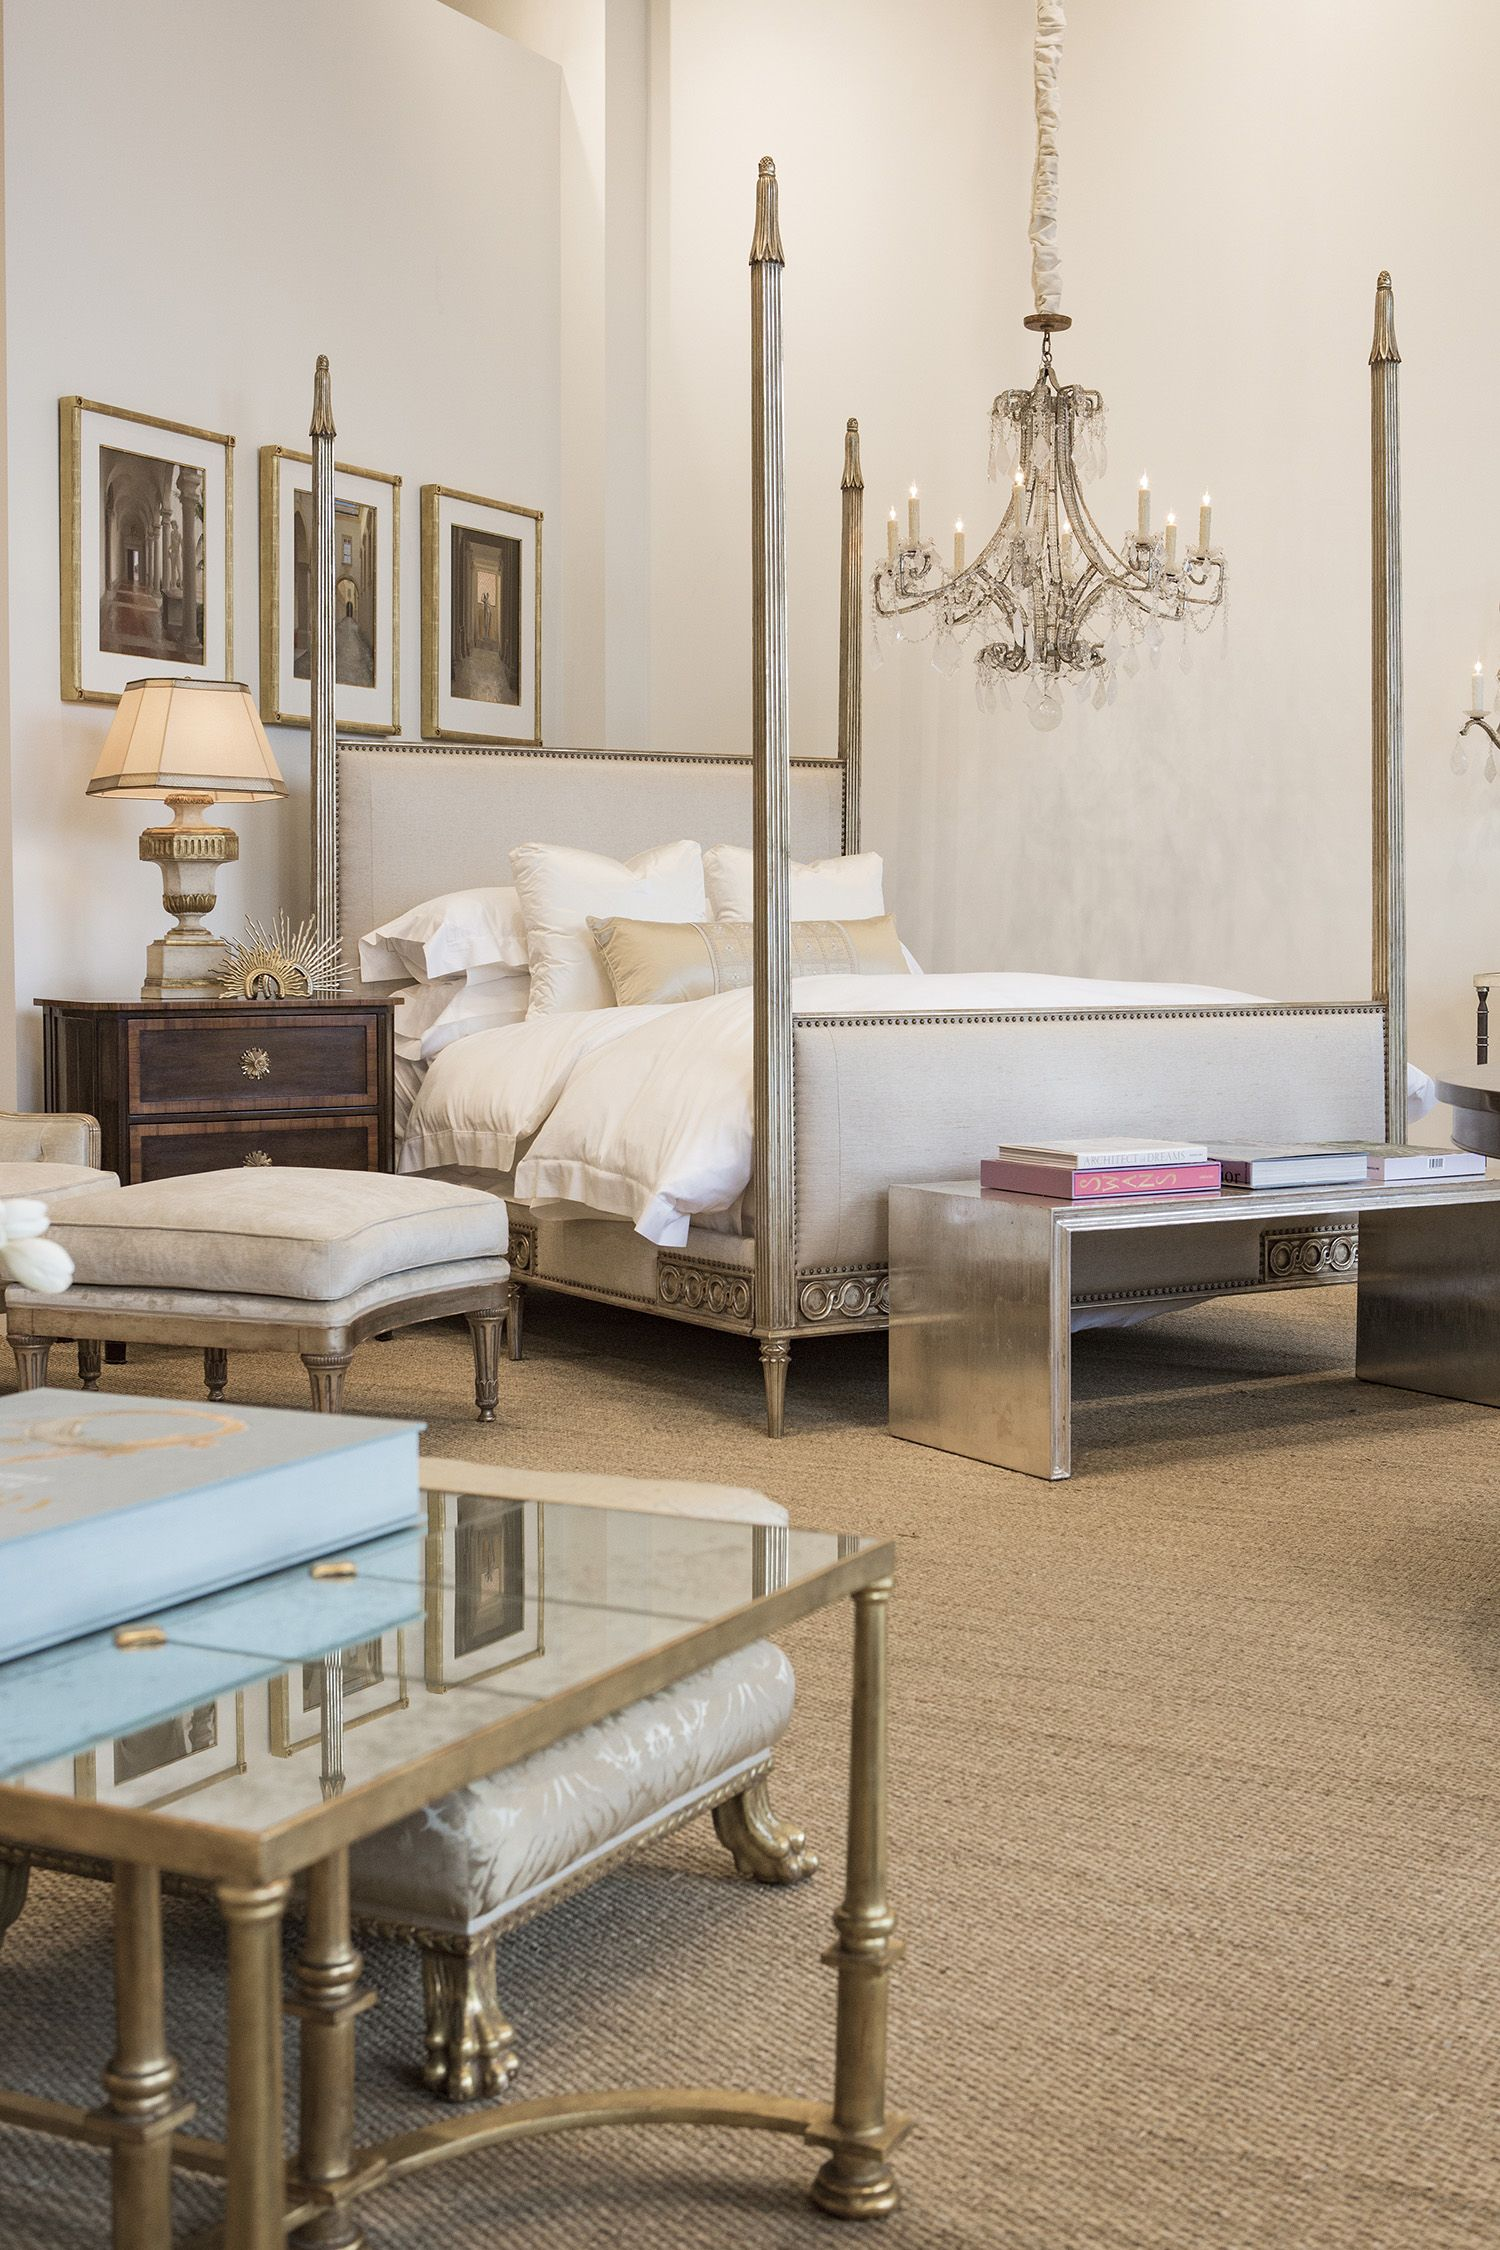 Exquisite Handcrafted Home Furnishings Visit Ebanista S New Los Angeles Showroom At Melrose And San Vicente